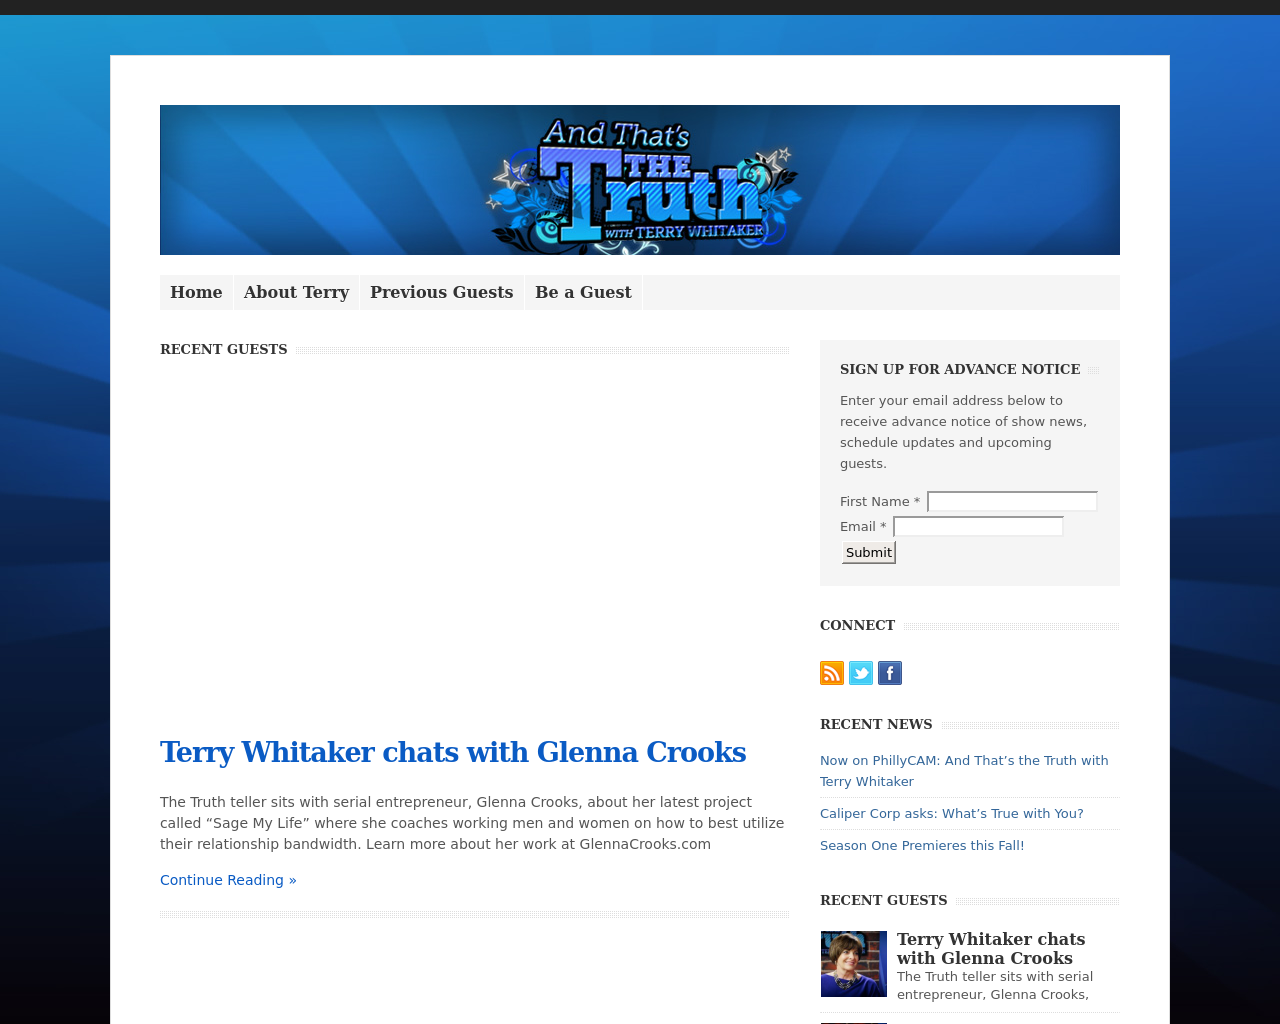 And-That's-The-Truth-With-TERRY-WHITAKER-Advertising-Reviews-Pricing